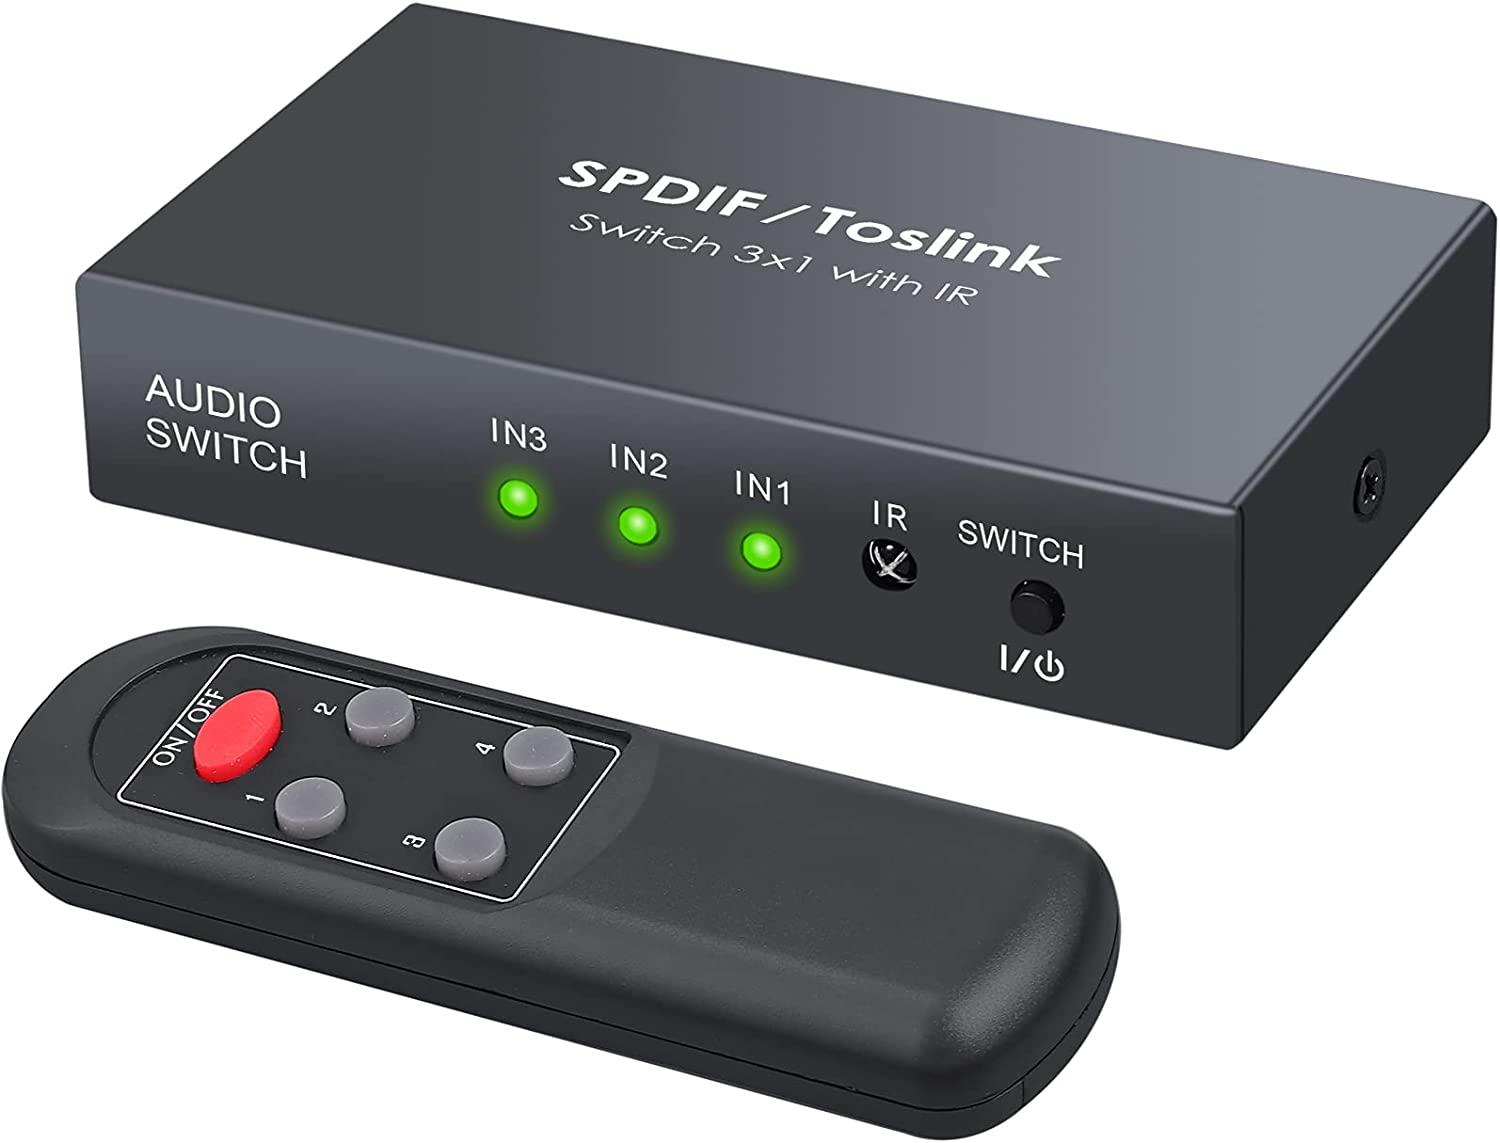 LiNKFOR Digital Toslink Optical 3x1 Max 70% Max 43% OFF OFF 3ft with Cabl Switch